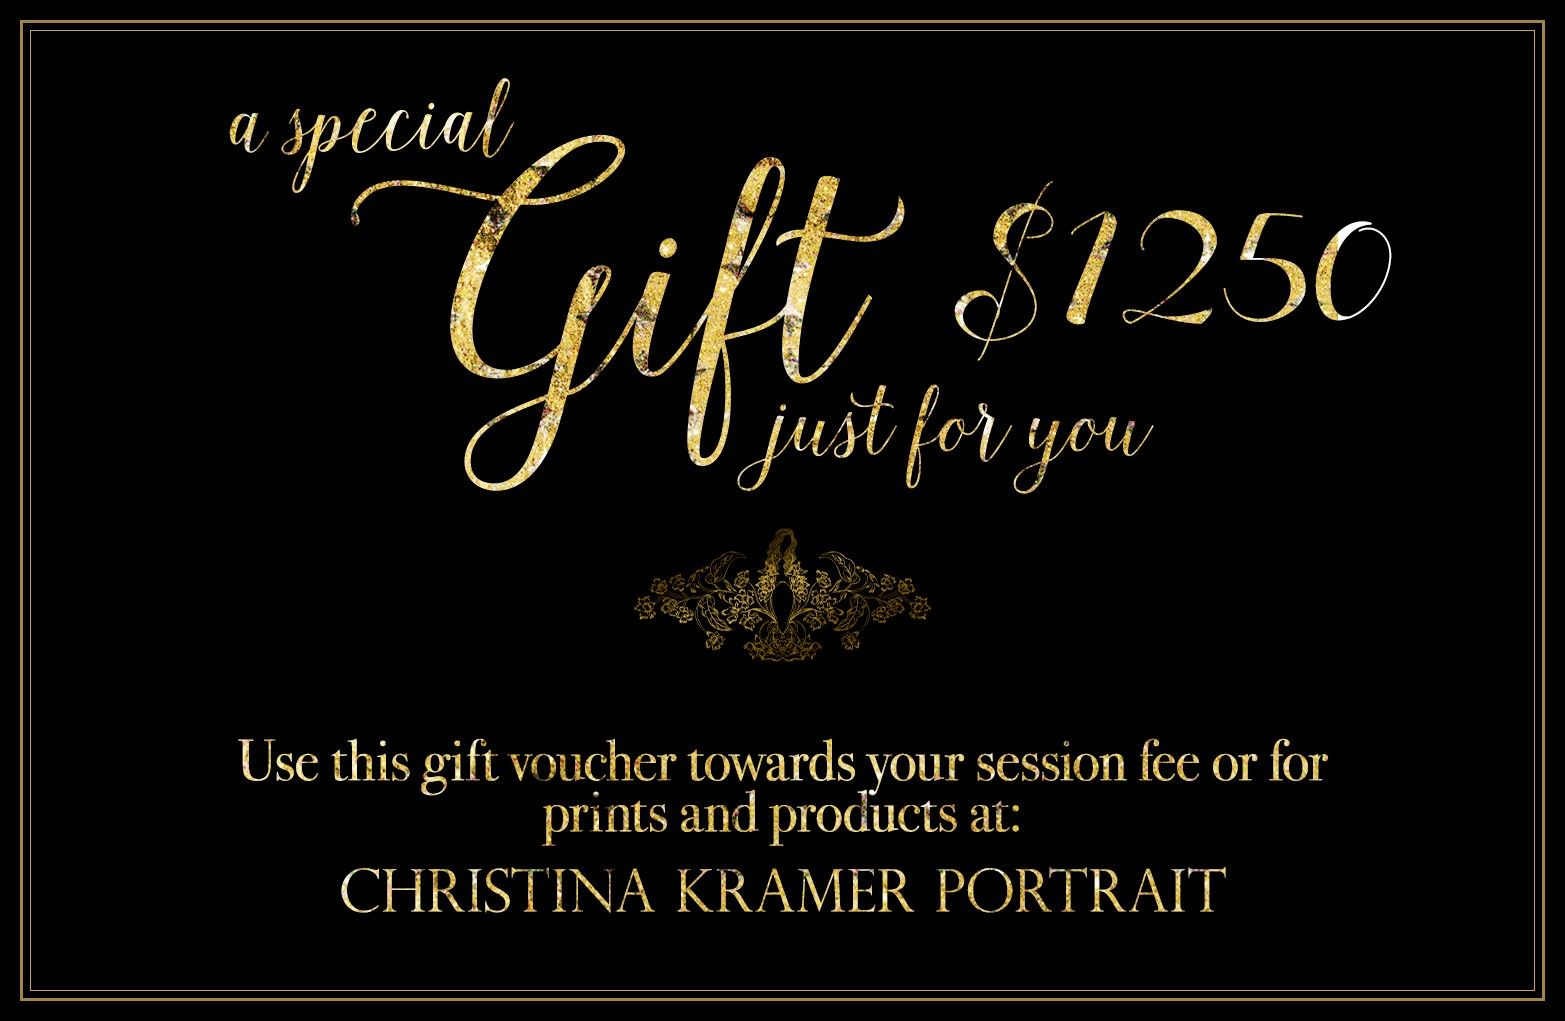 A special gift just for you. Use this $1250 gift voucher towards your session fee or for prints and products at: CHRISTINA KRAMER PORTRAIT — LONG BEACH, NEW YORK © Christina Tisi Kramer